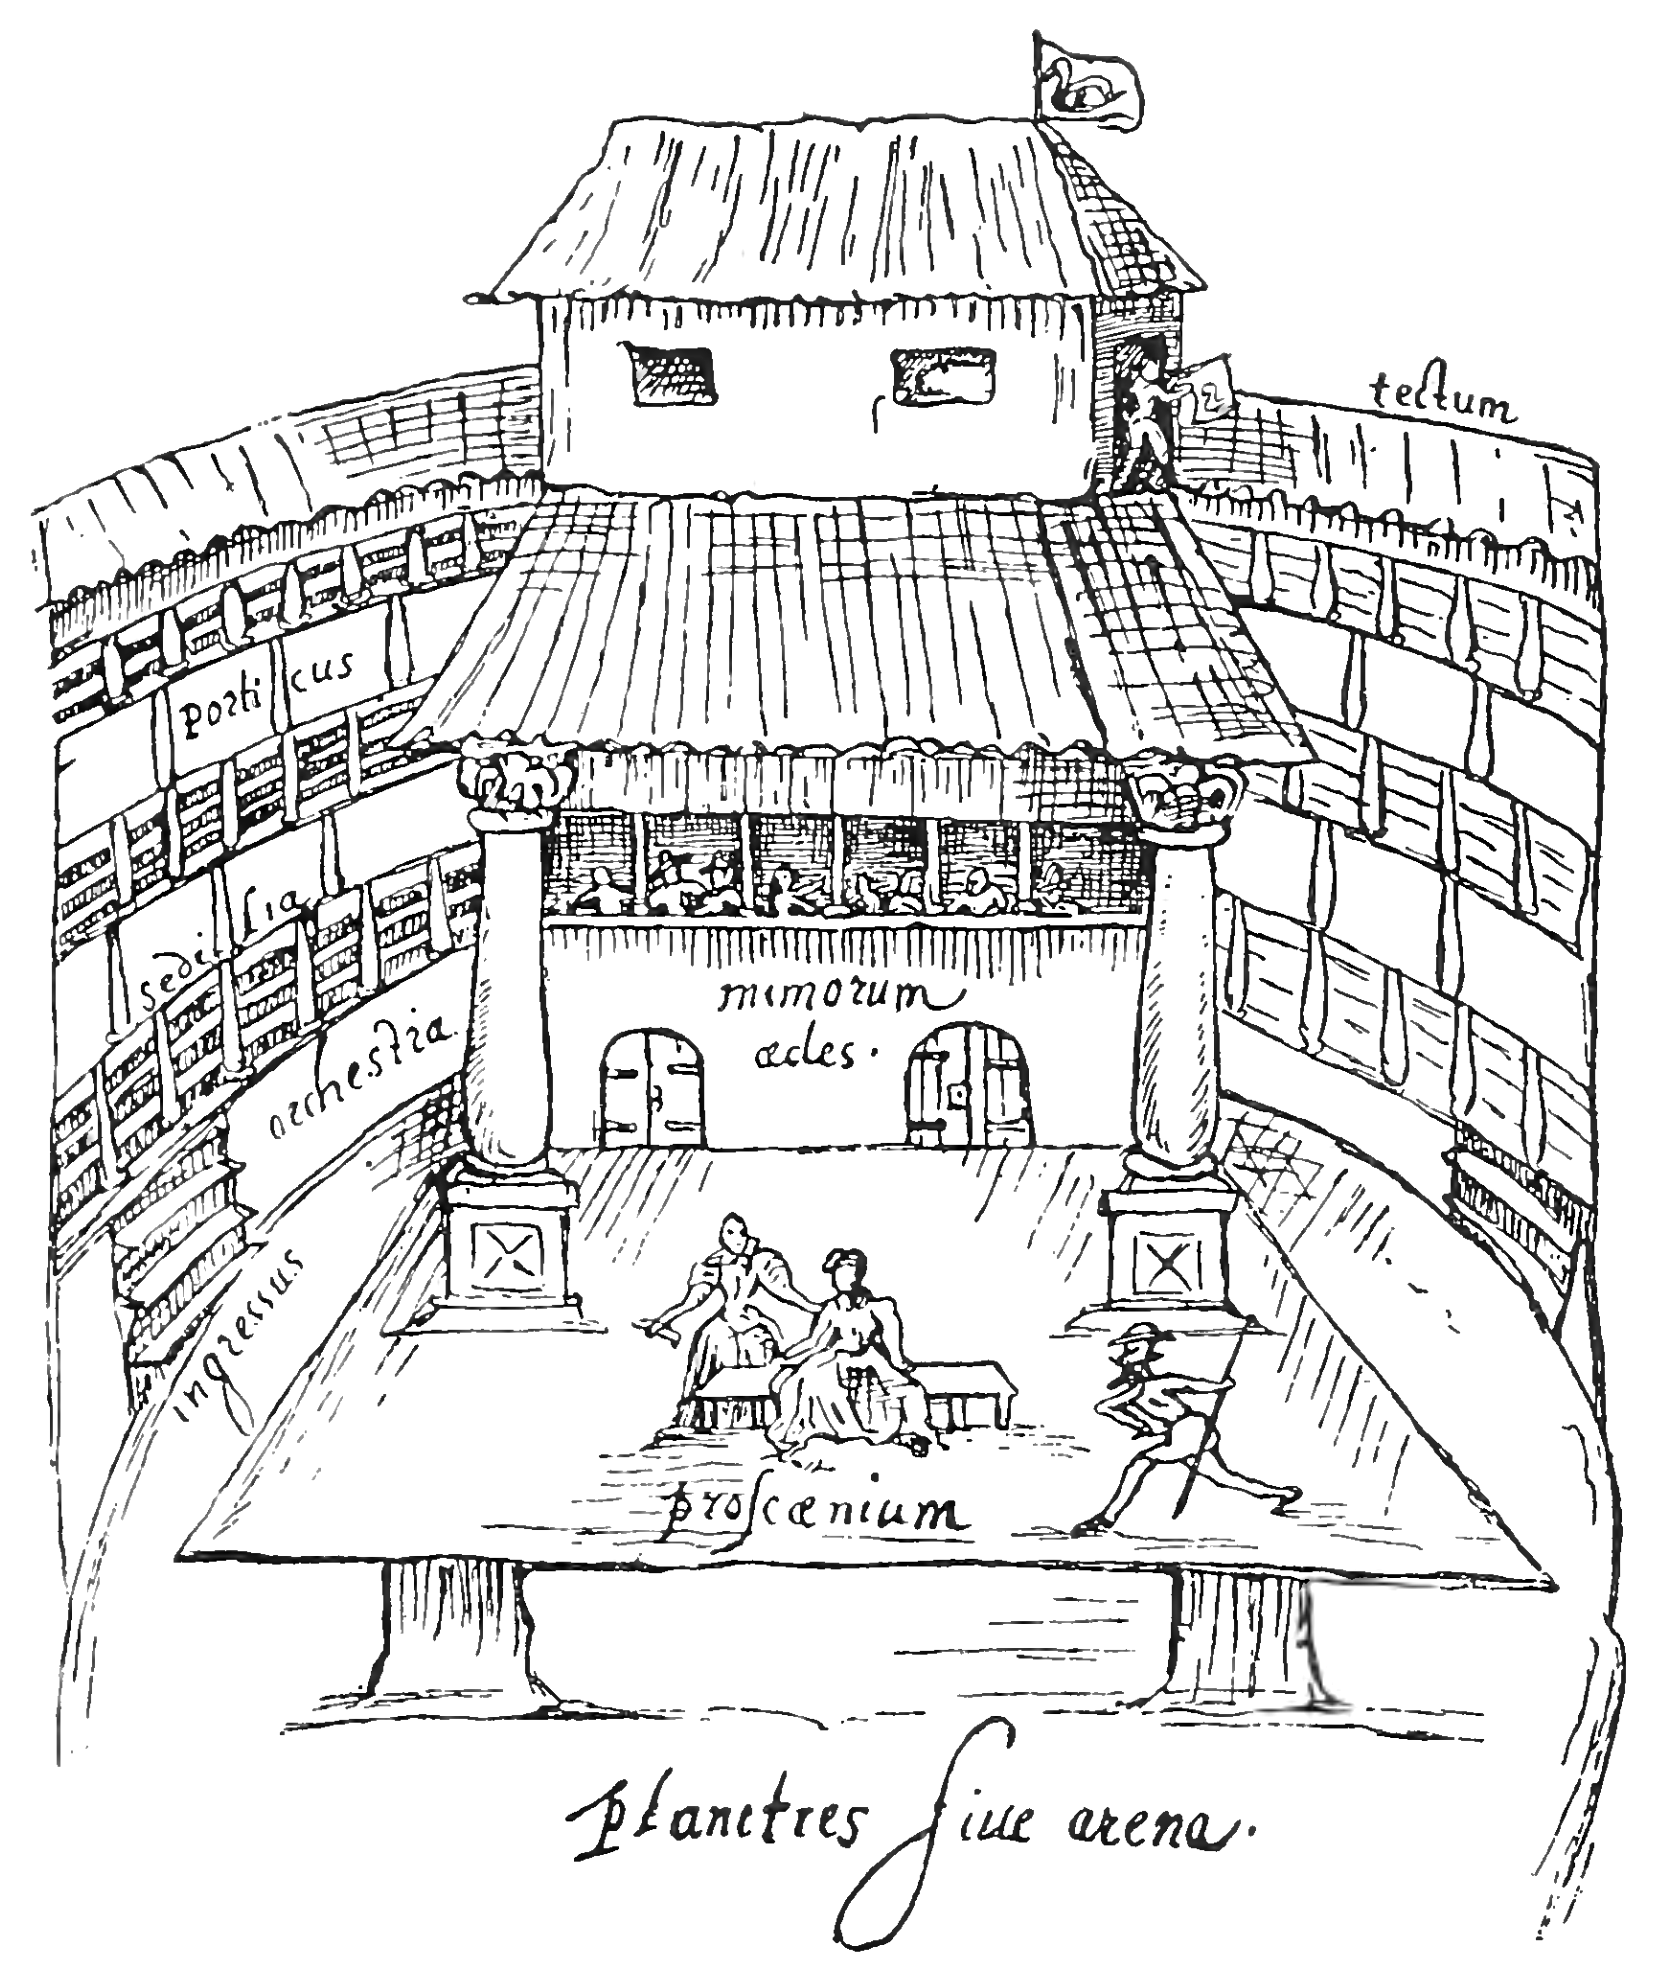 A performance in progress at the Swan theatre in London in 1596.